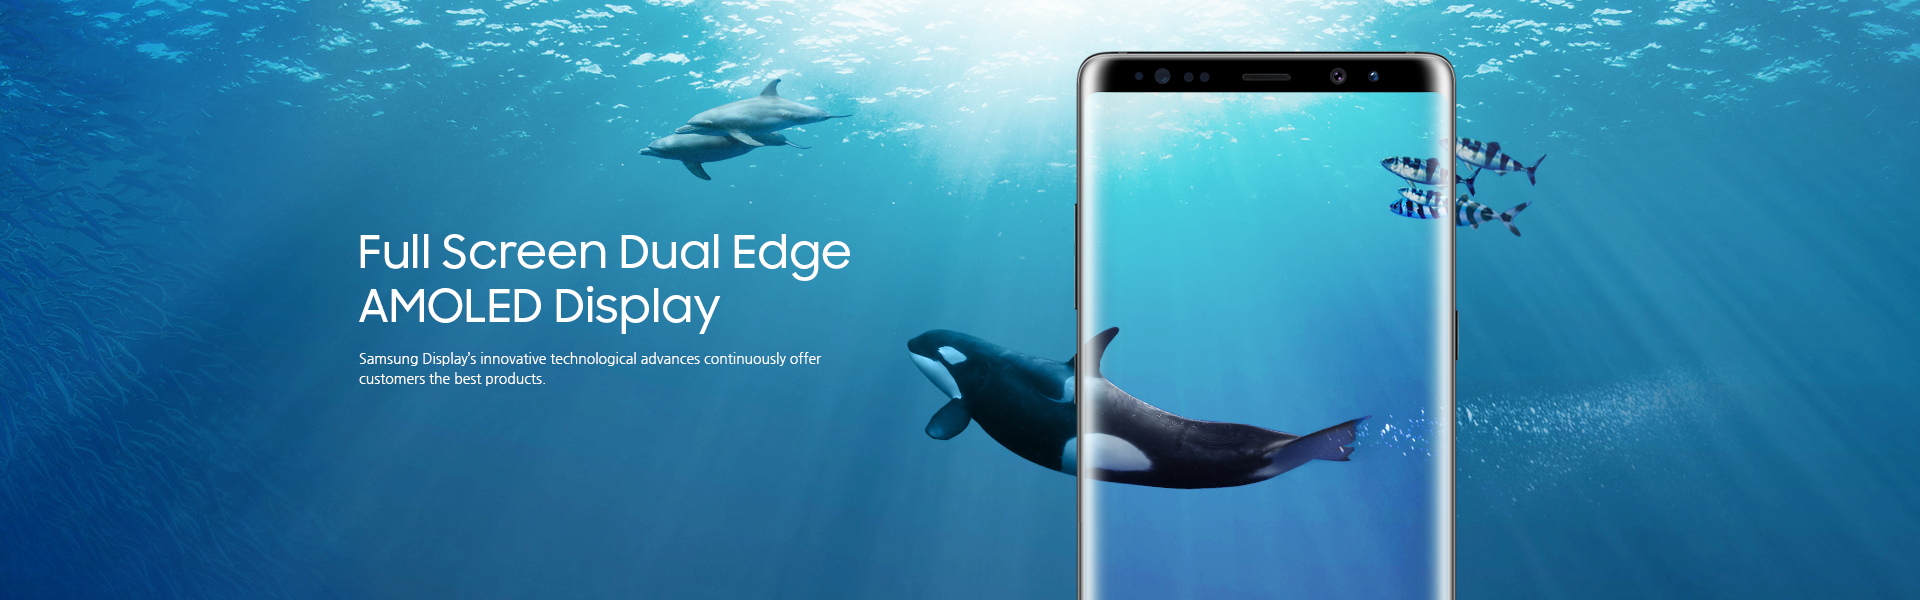 Full Screen Dual Edge AMOLED Dispaly - Samsung Display's innovative technological advances continuously offer customers the best products.